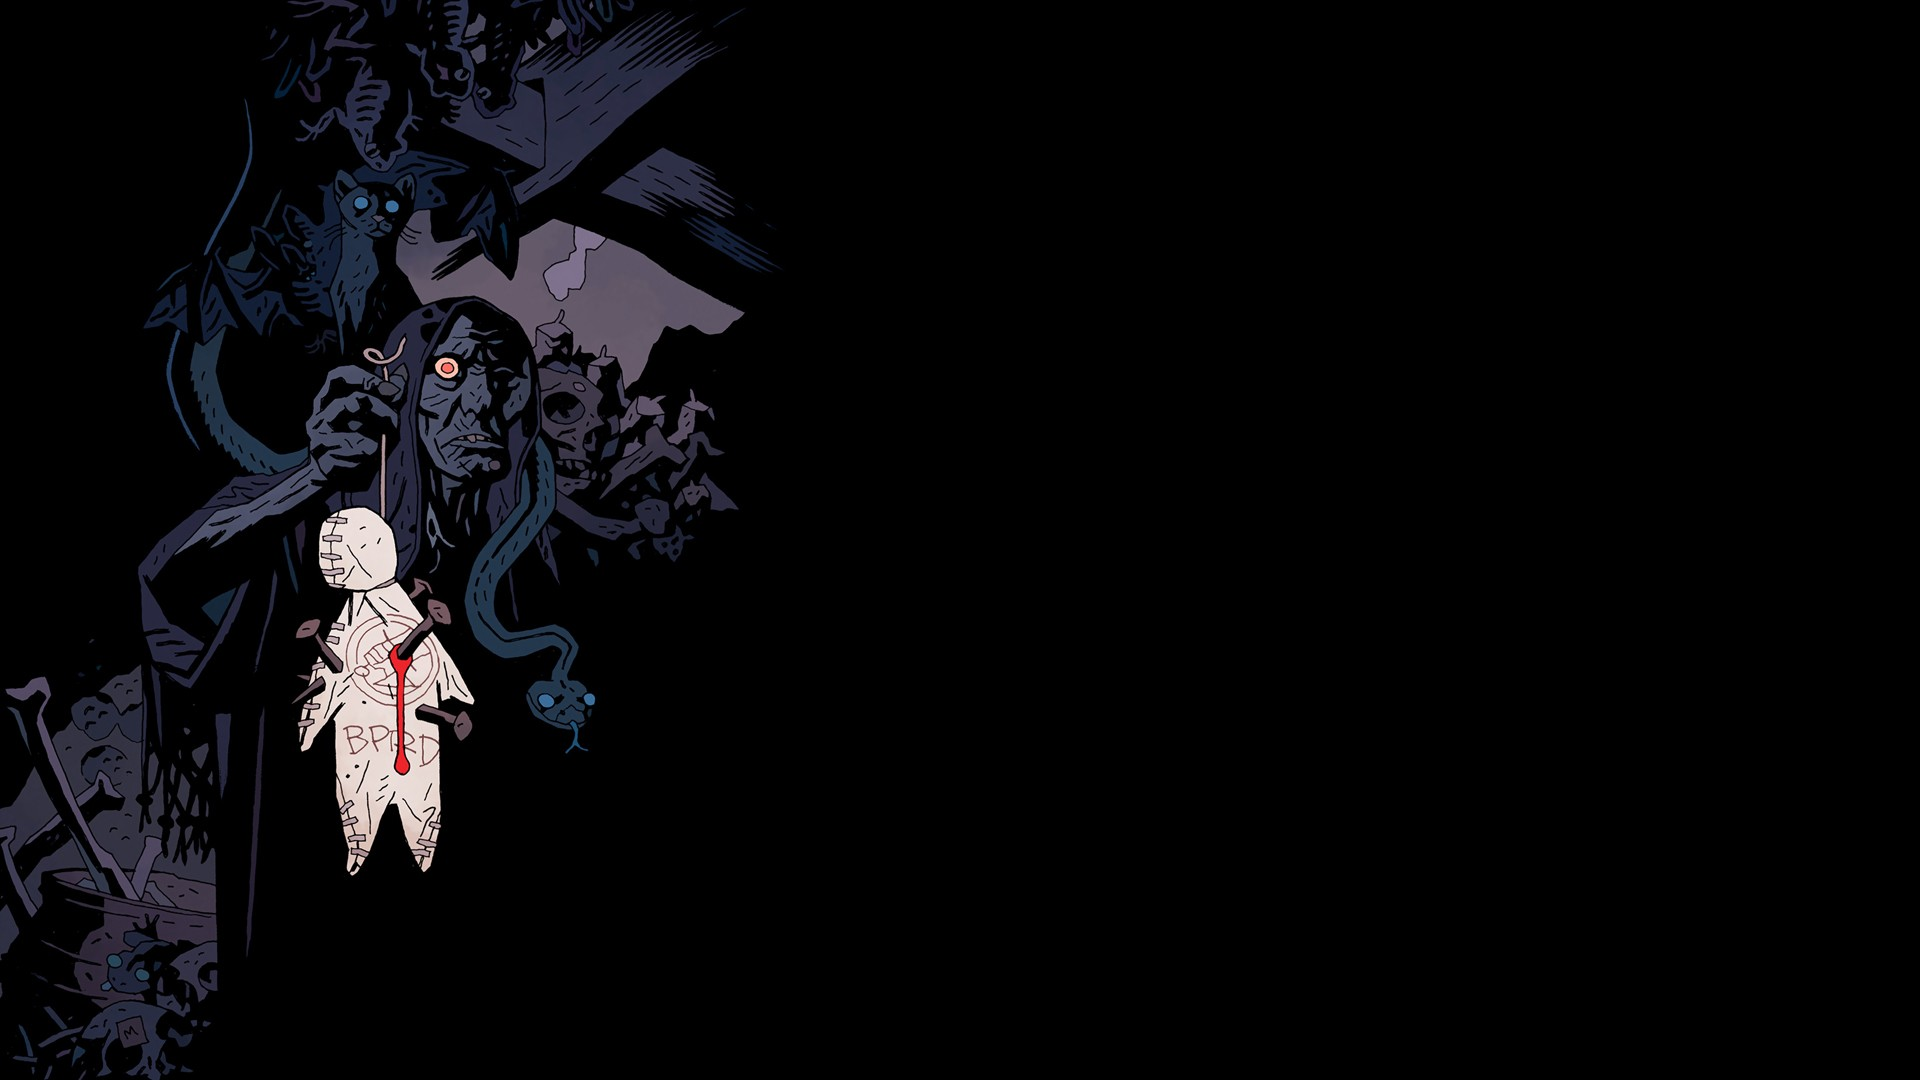 Wallpaper Abyss Explore the Collection Hellboy Comics Hellboy 389697 1920x1080